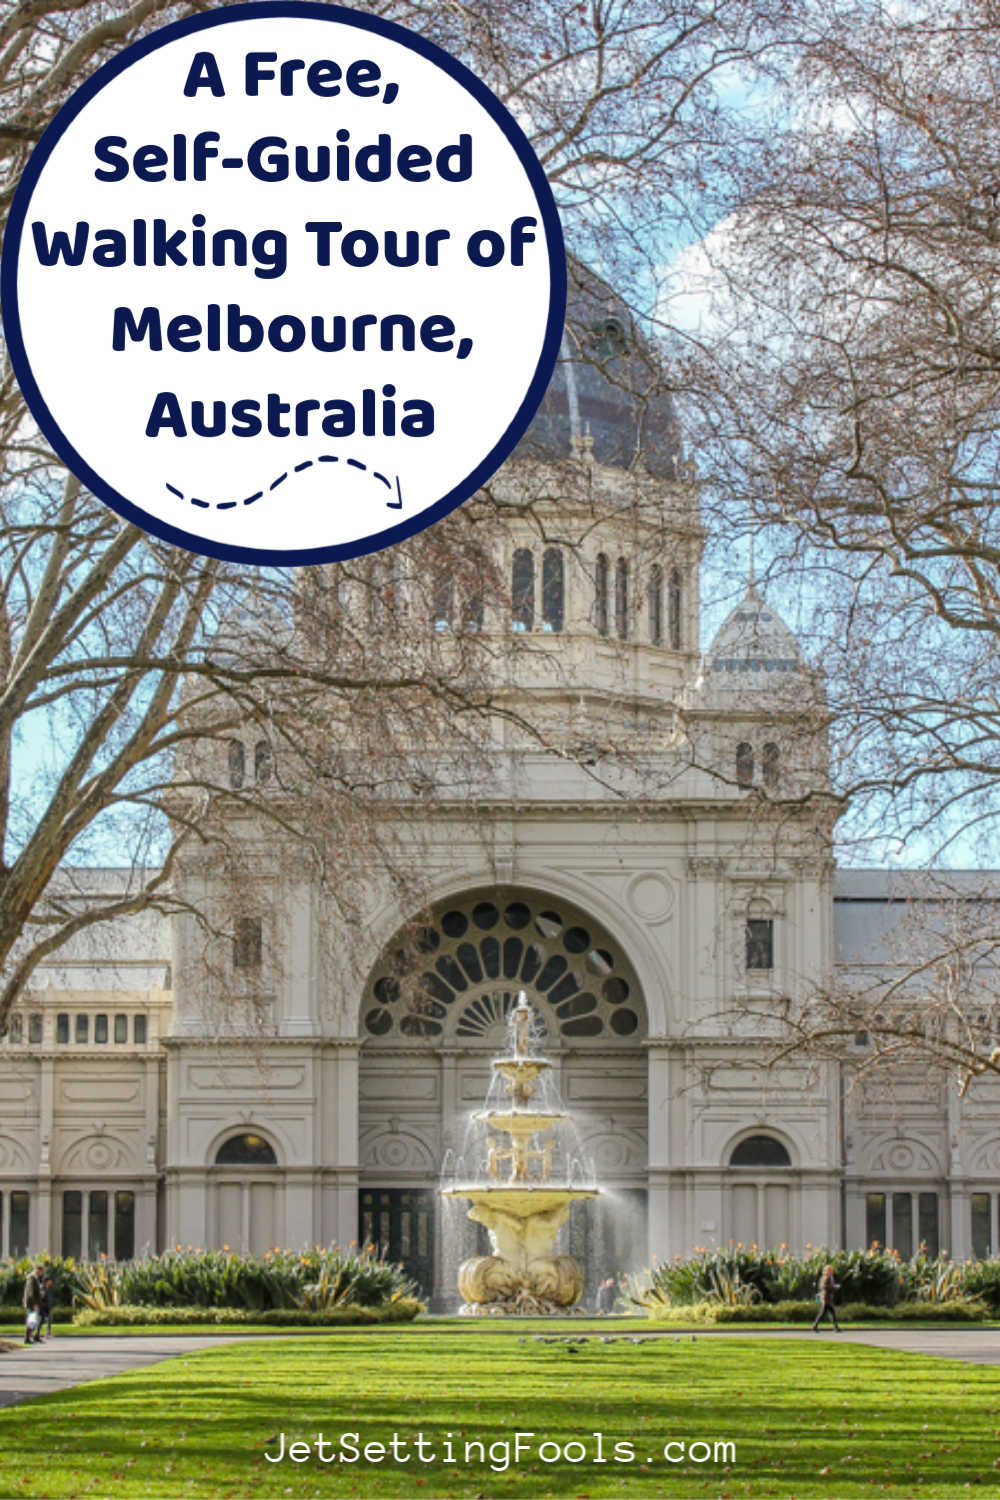 Self-Guided Walking Tour of Melbourne Australia by JetSettingFools.com